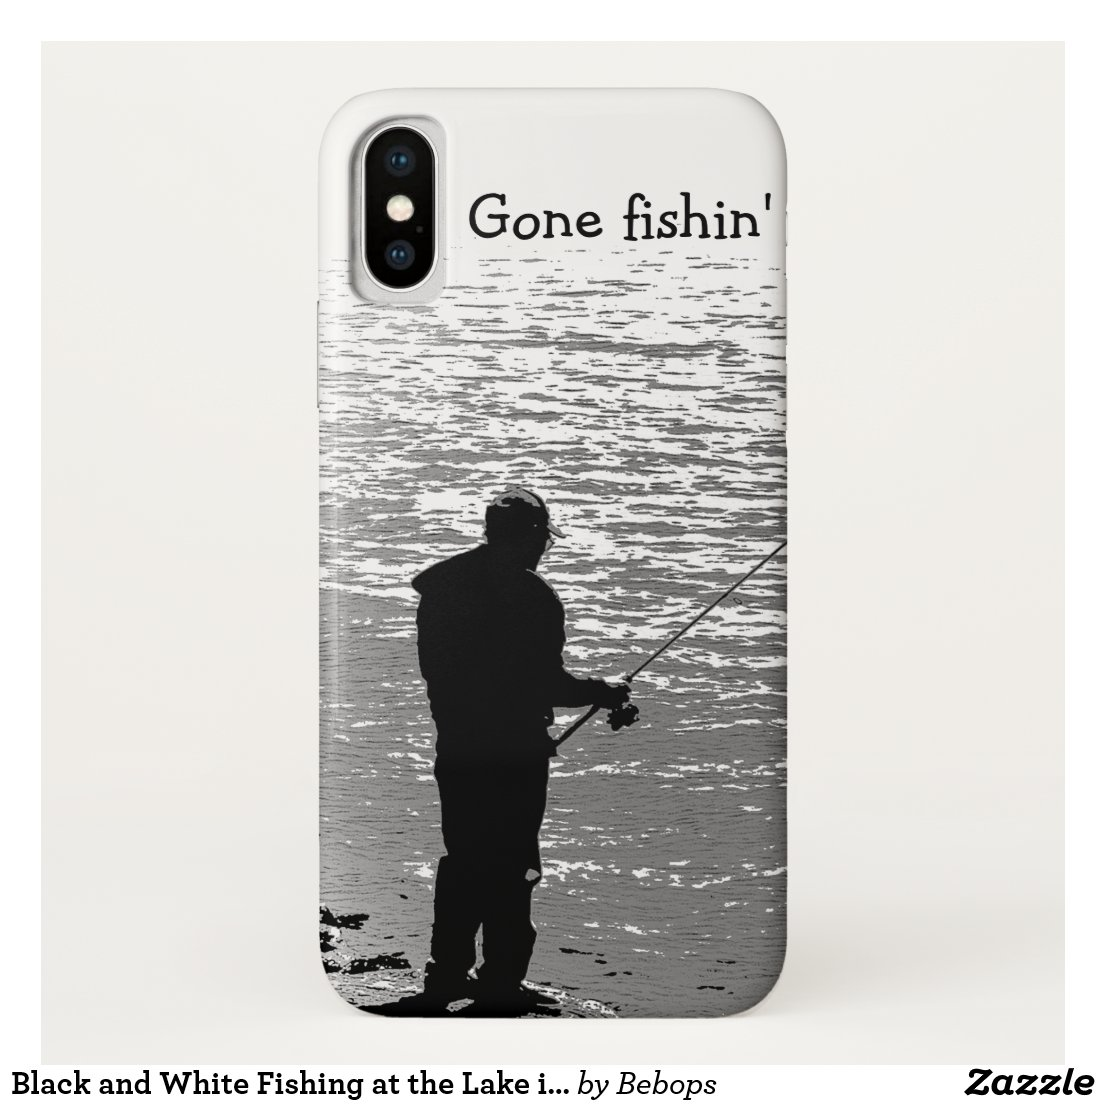 Black and White Fishing at the Lake iPhone X Case